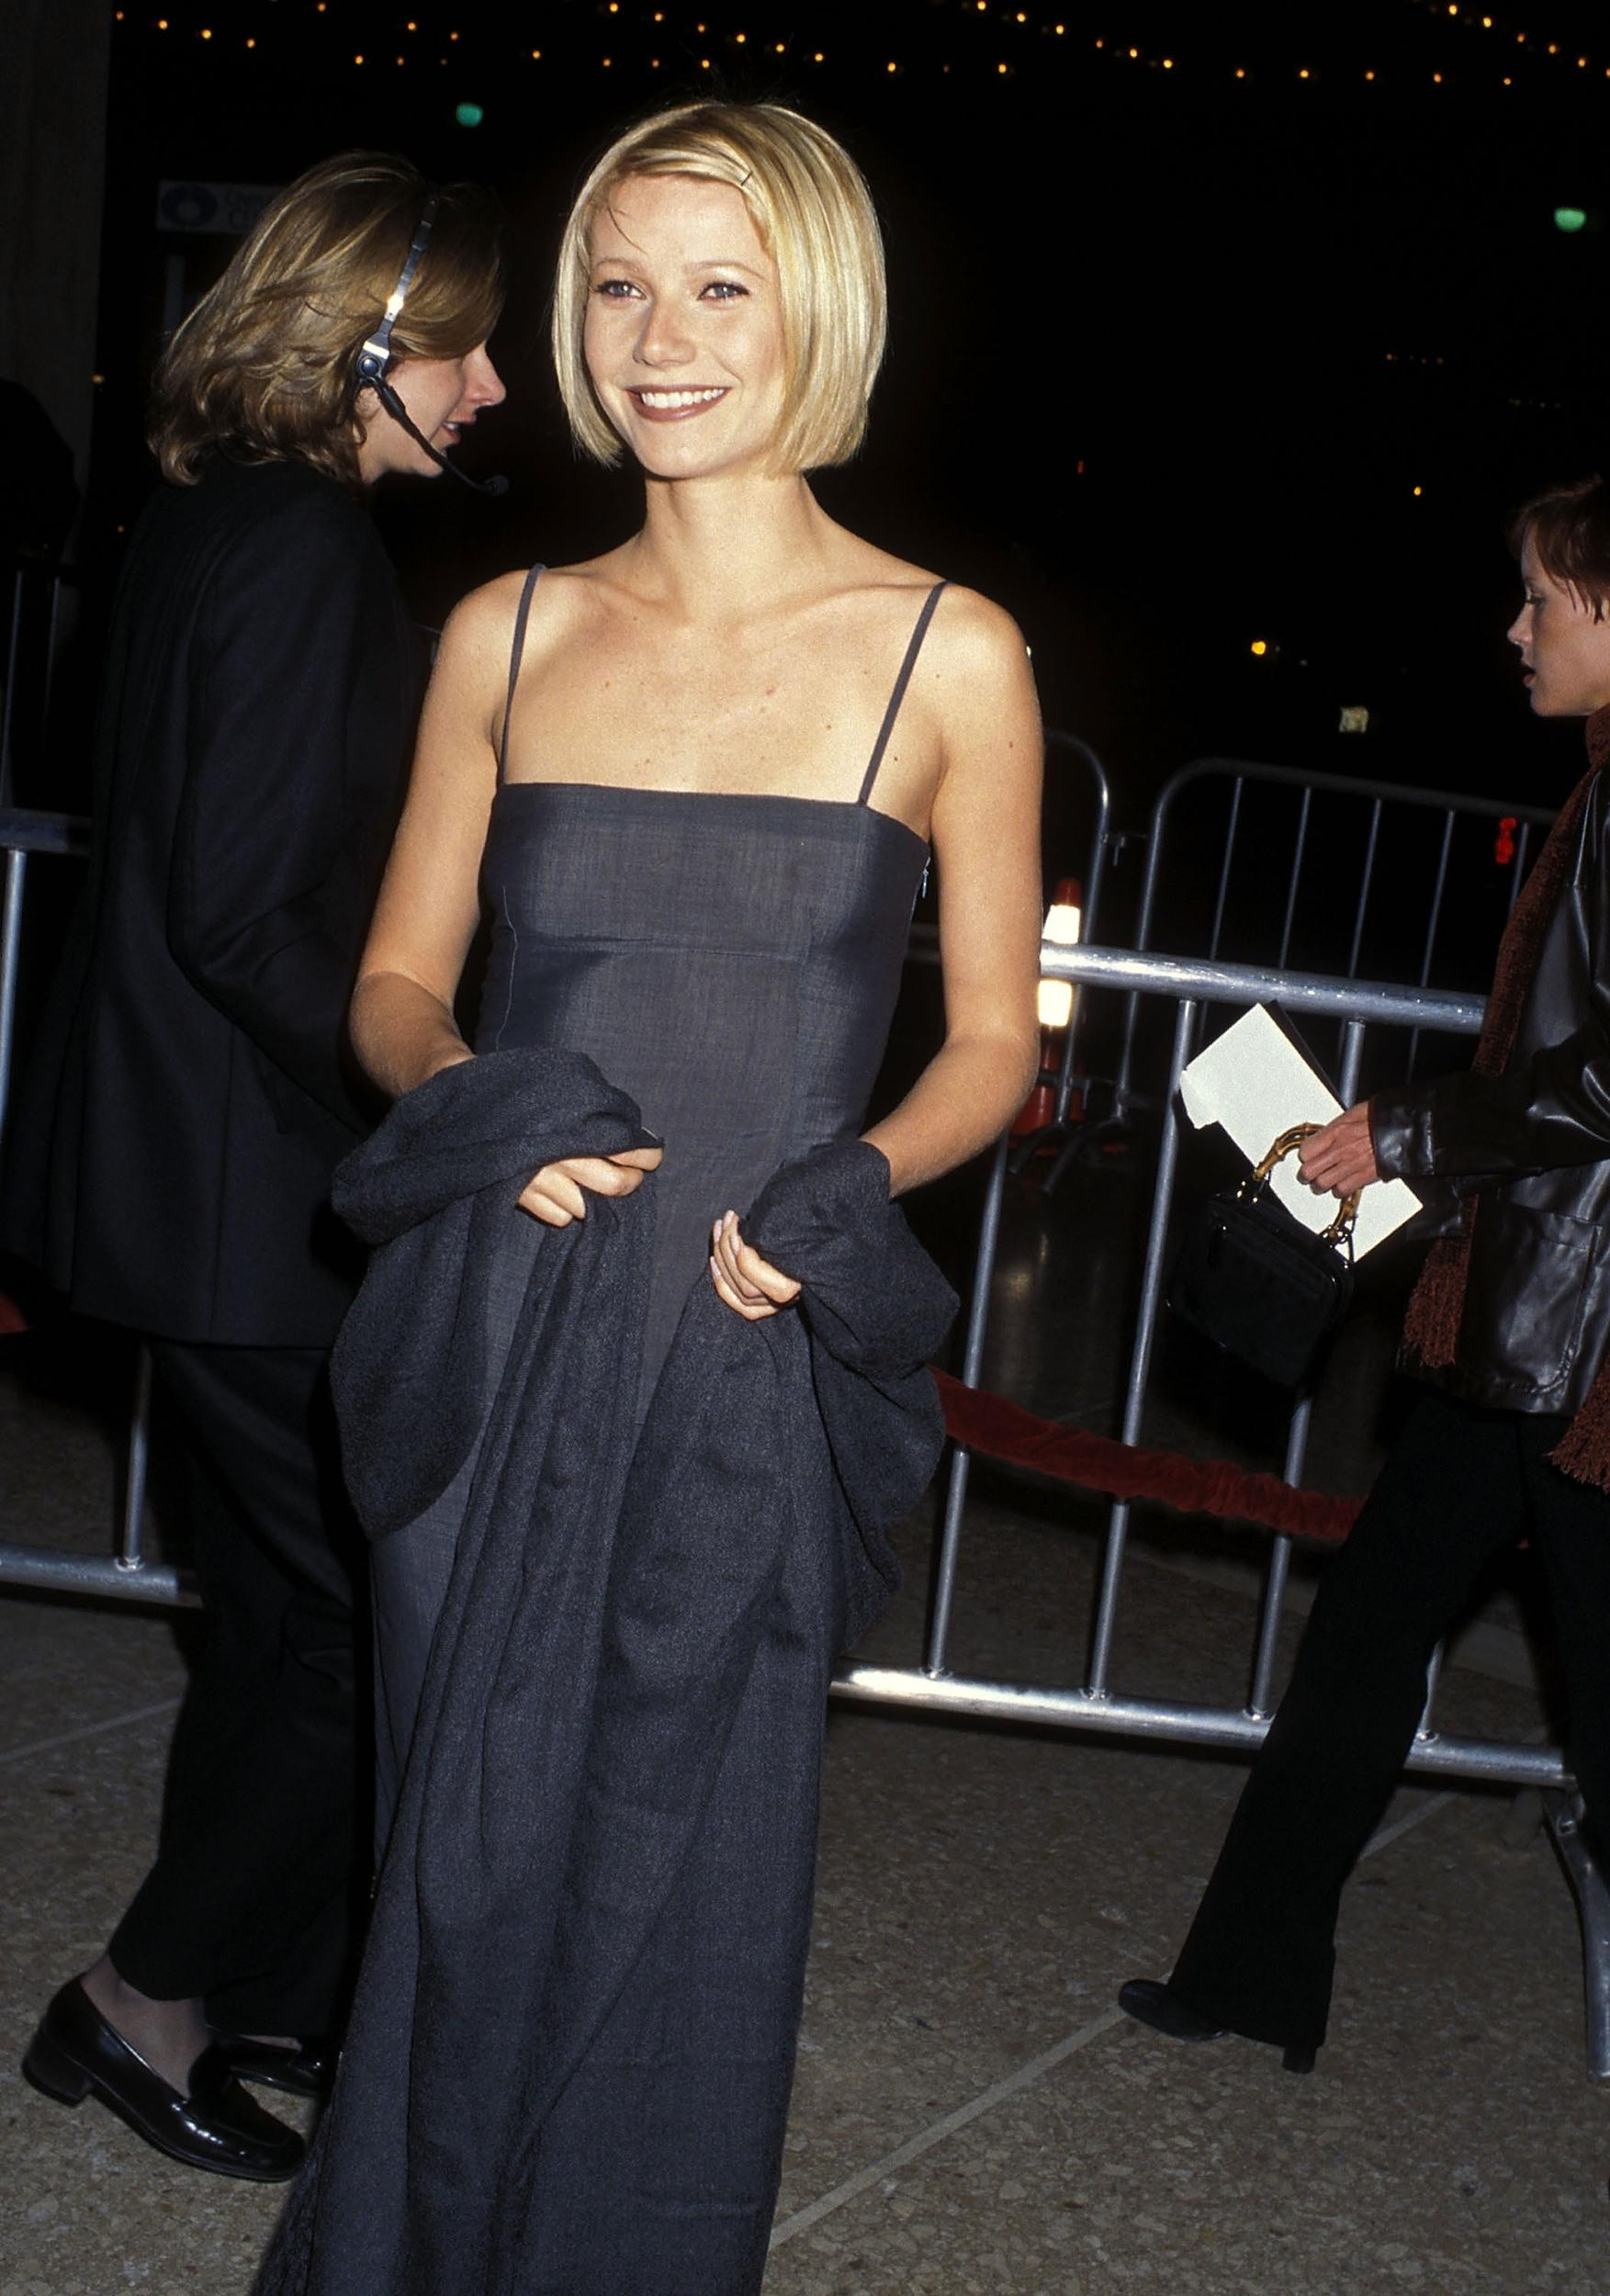 Actress Gwyneth Paltrow attends the 'Great Expectations' Century City Premiere on January 20, 1998 at Cineplex Odeon Century Plaza Cinemas in Century City, California. (Photo by Ron Galella, Ltd./WireImage)